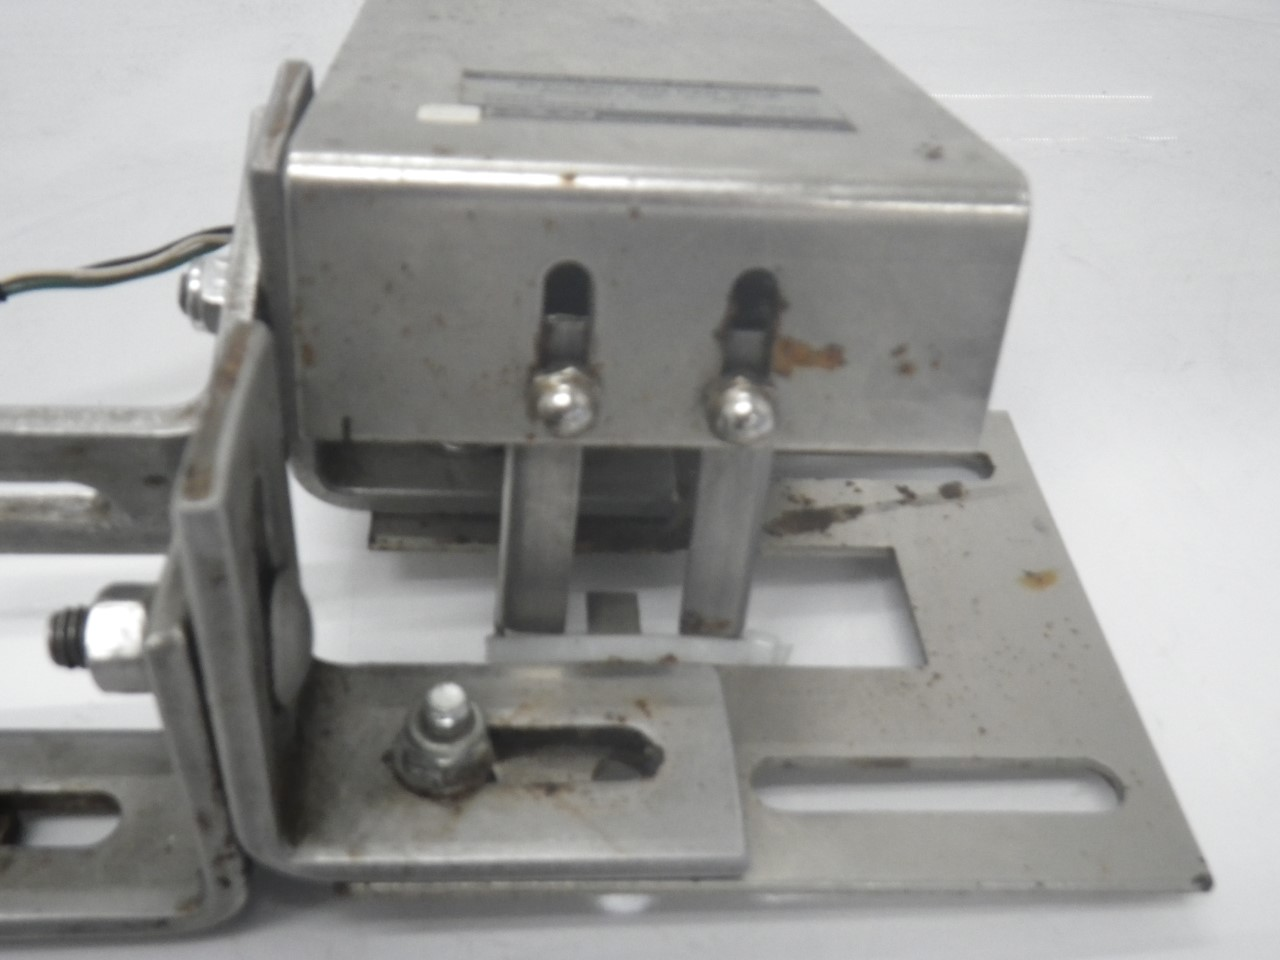 IMGP6937C-3801 C-3800A 3012Peco Electro-arm Controls forPackage Inspection(Used Tested) (15)